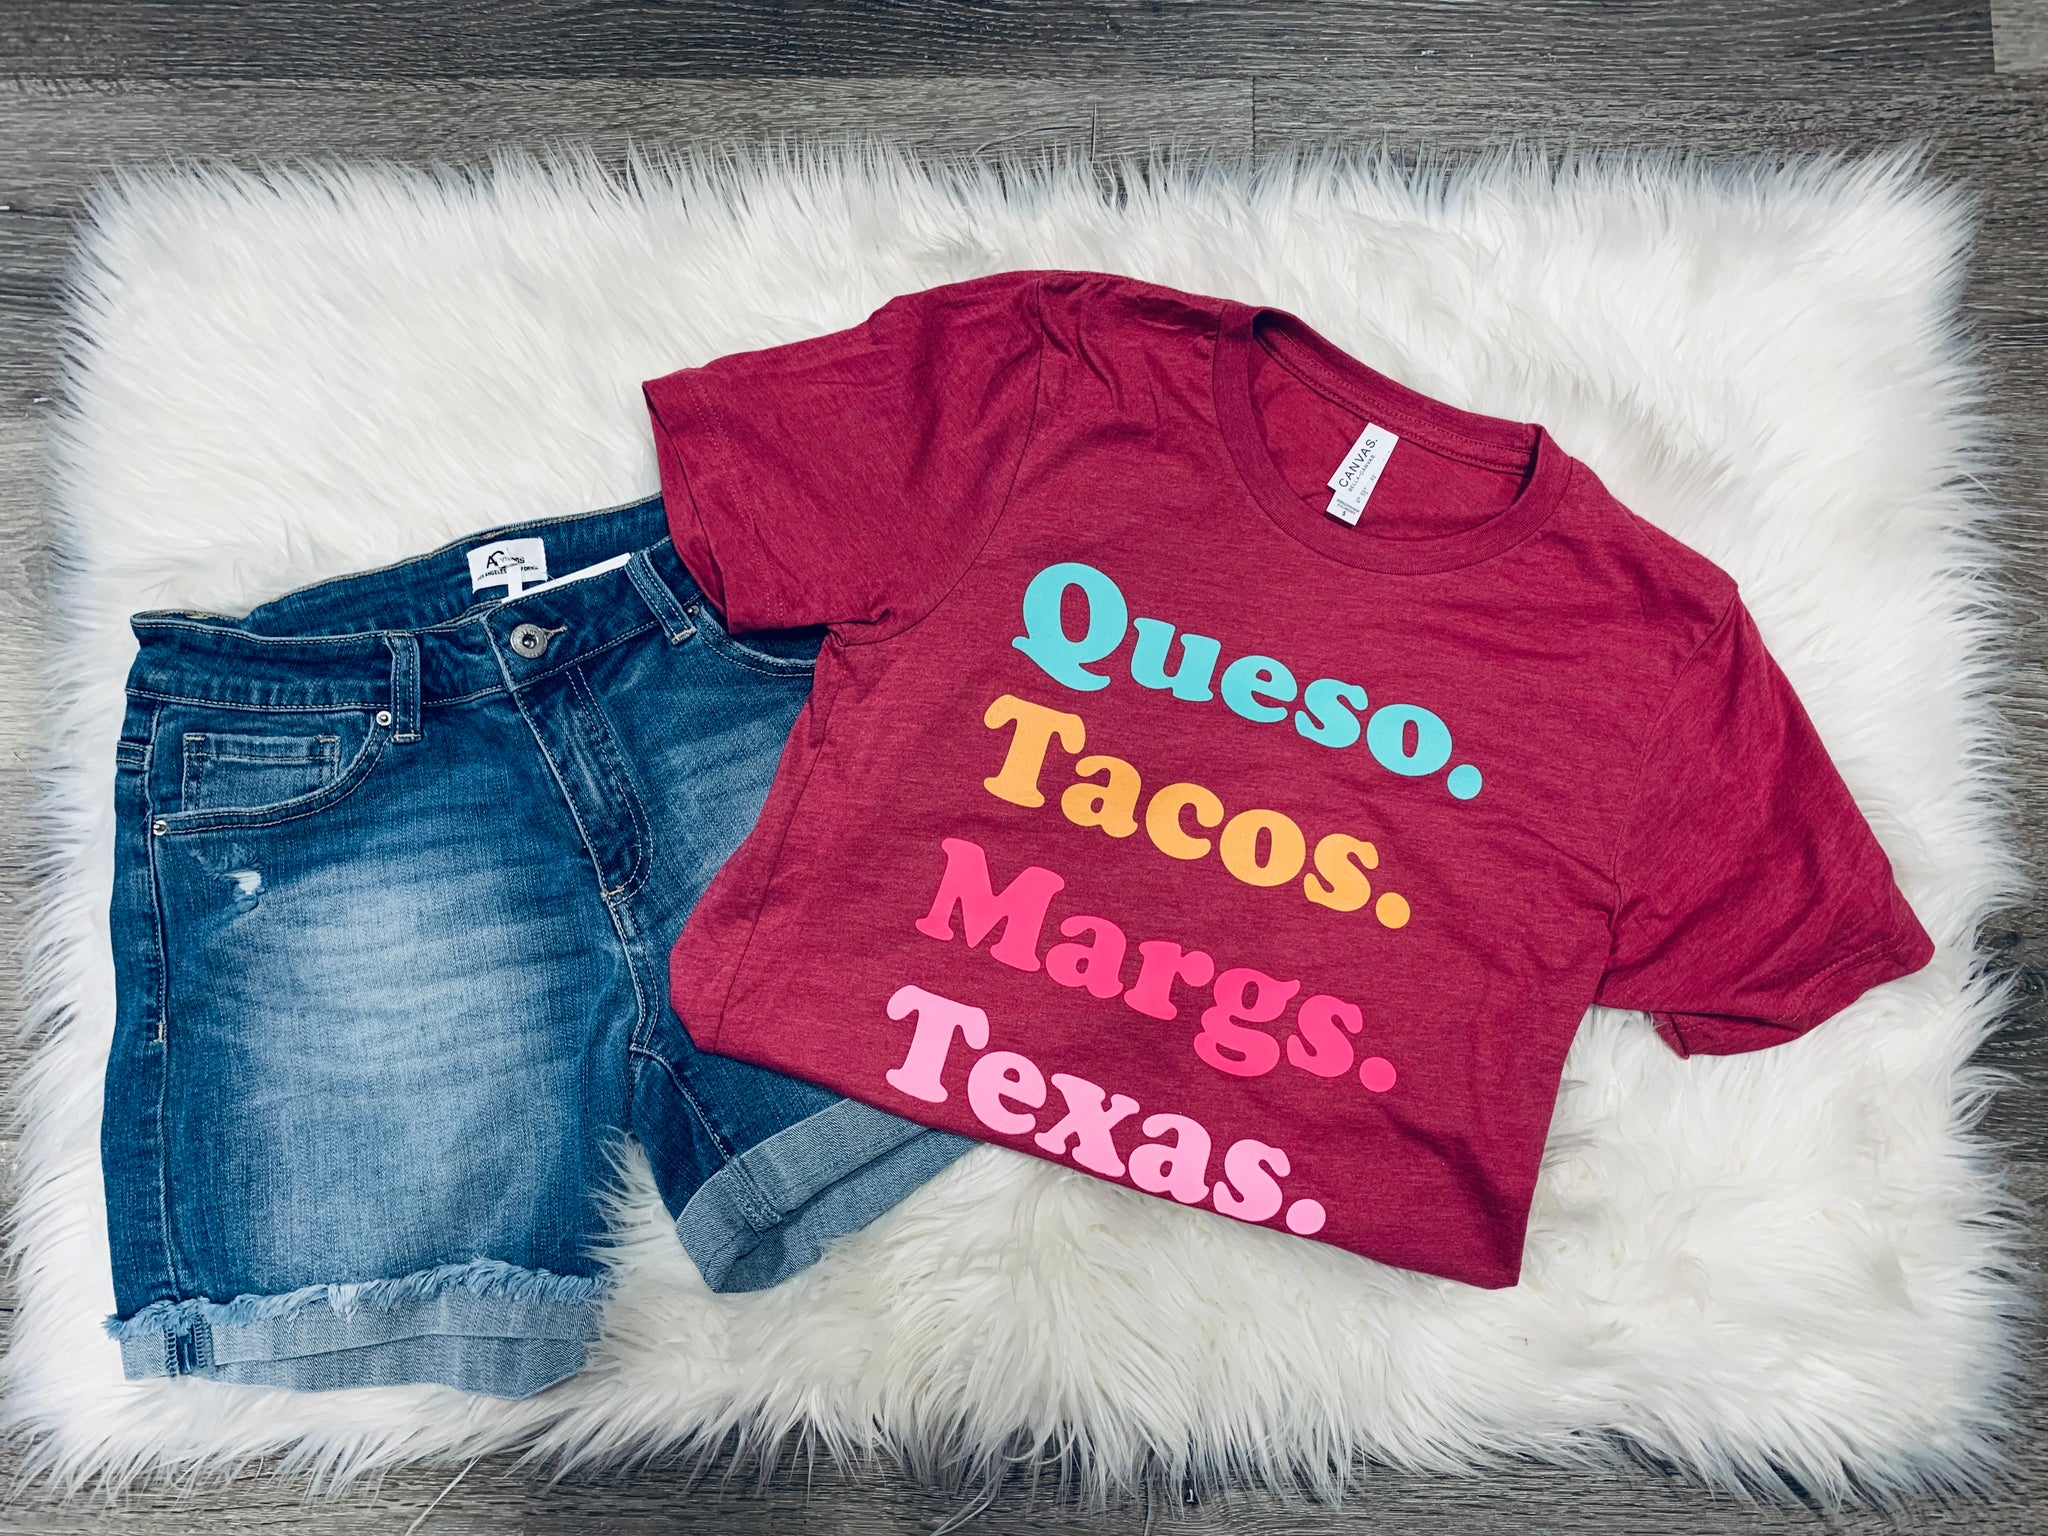 queso. tacos. margs. texas.